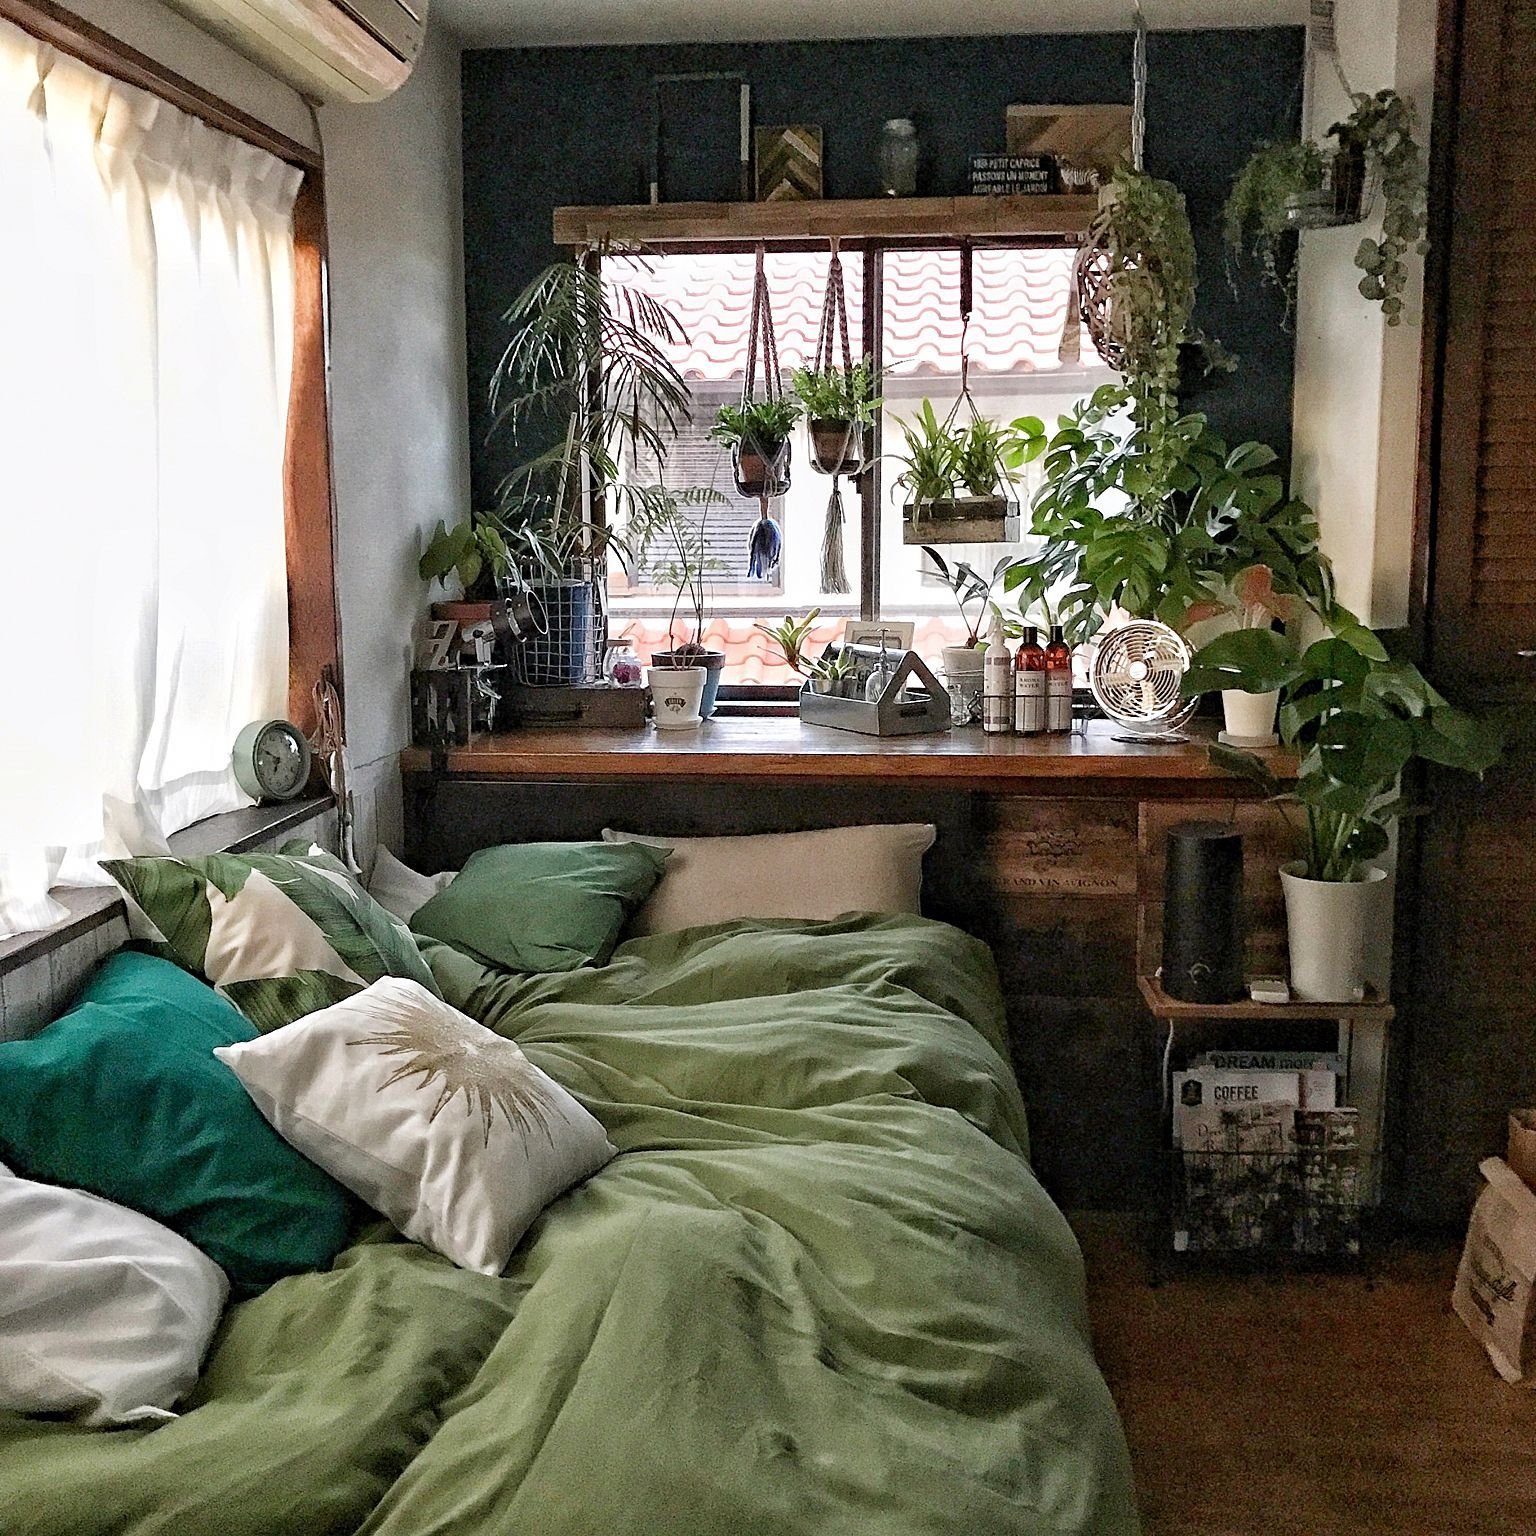 Apartment Decorating Ideas No Matter What Kind Of: Overview/隠す派/山善収納部/植物のある暮らし/DIY/NO GREEN NO LIFE…などのインテリア